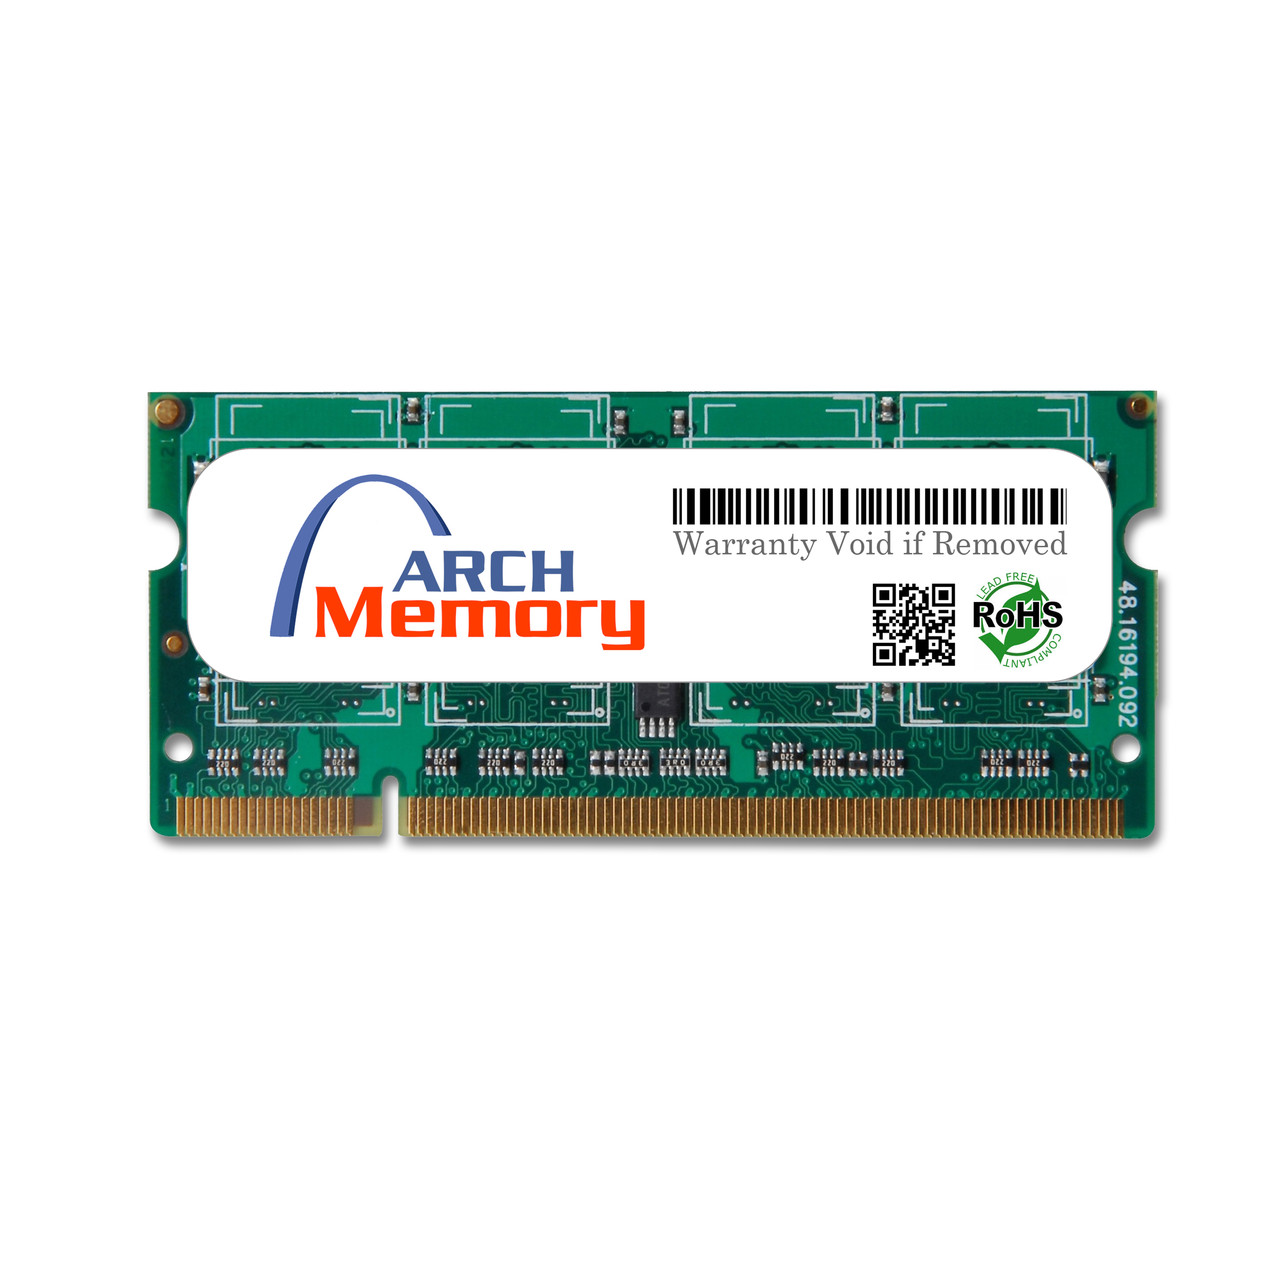 1GB 200-Pin DDR-333 PC2700 Sodimm (2Rx8) RAM | Arch Memory